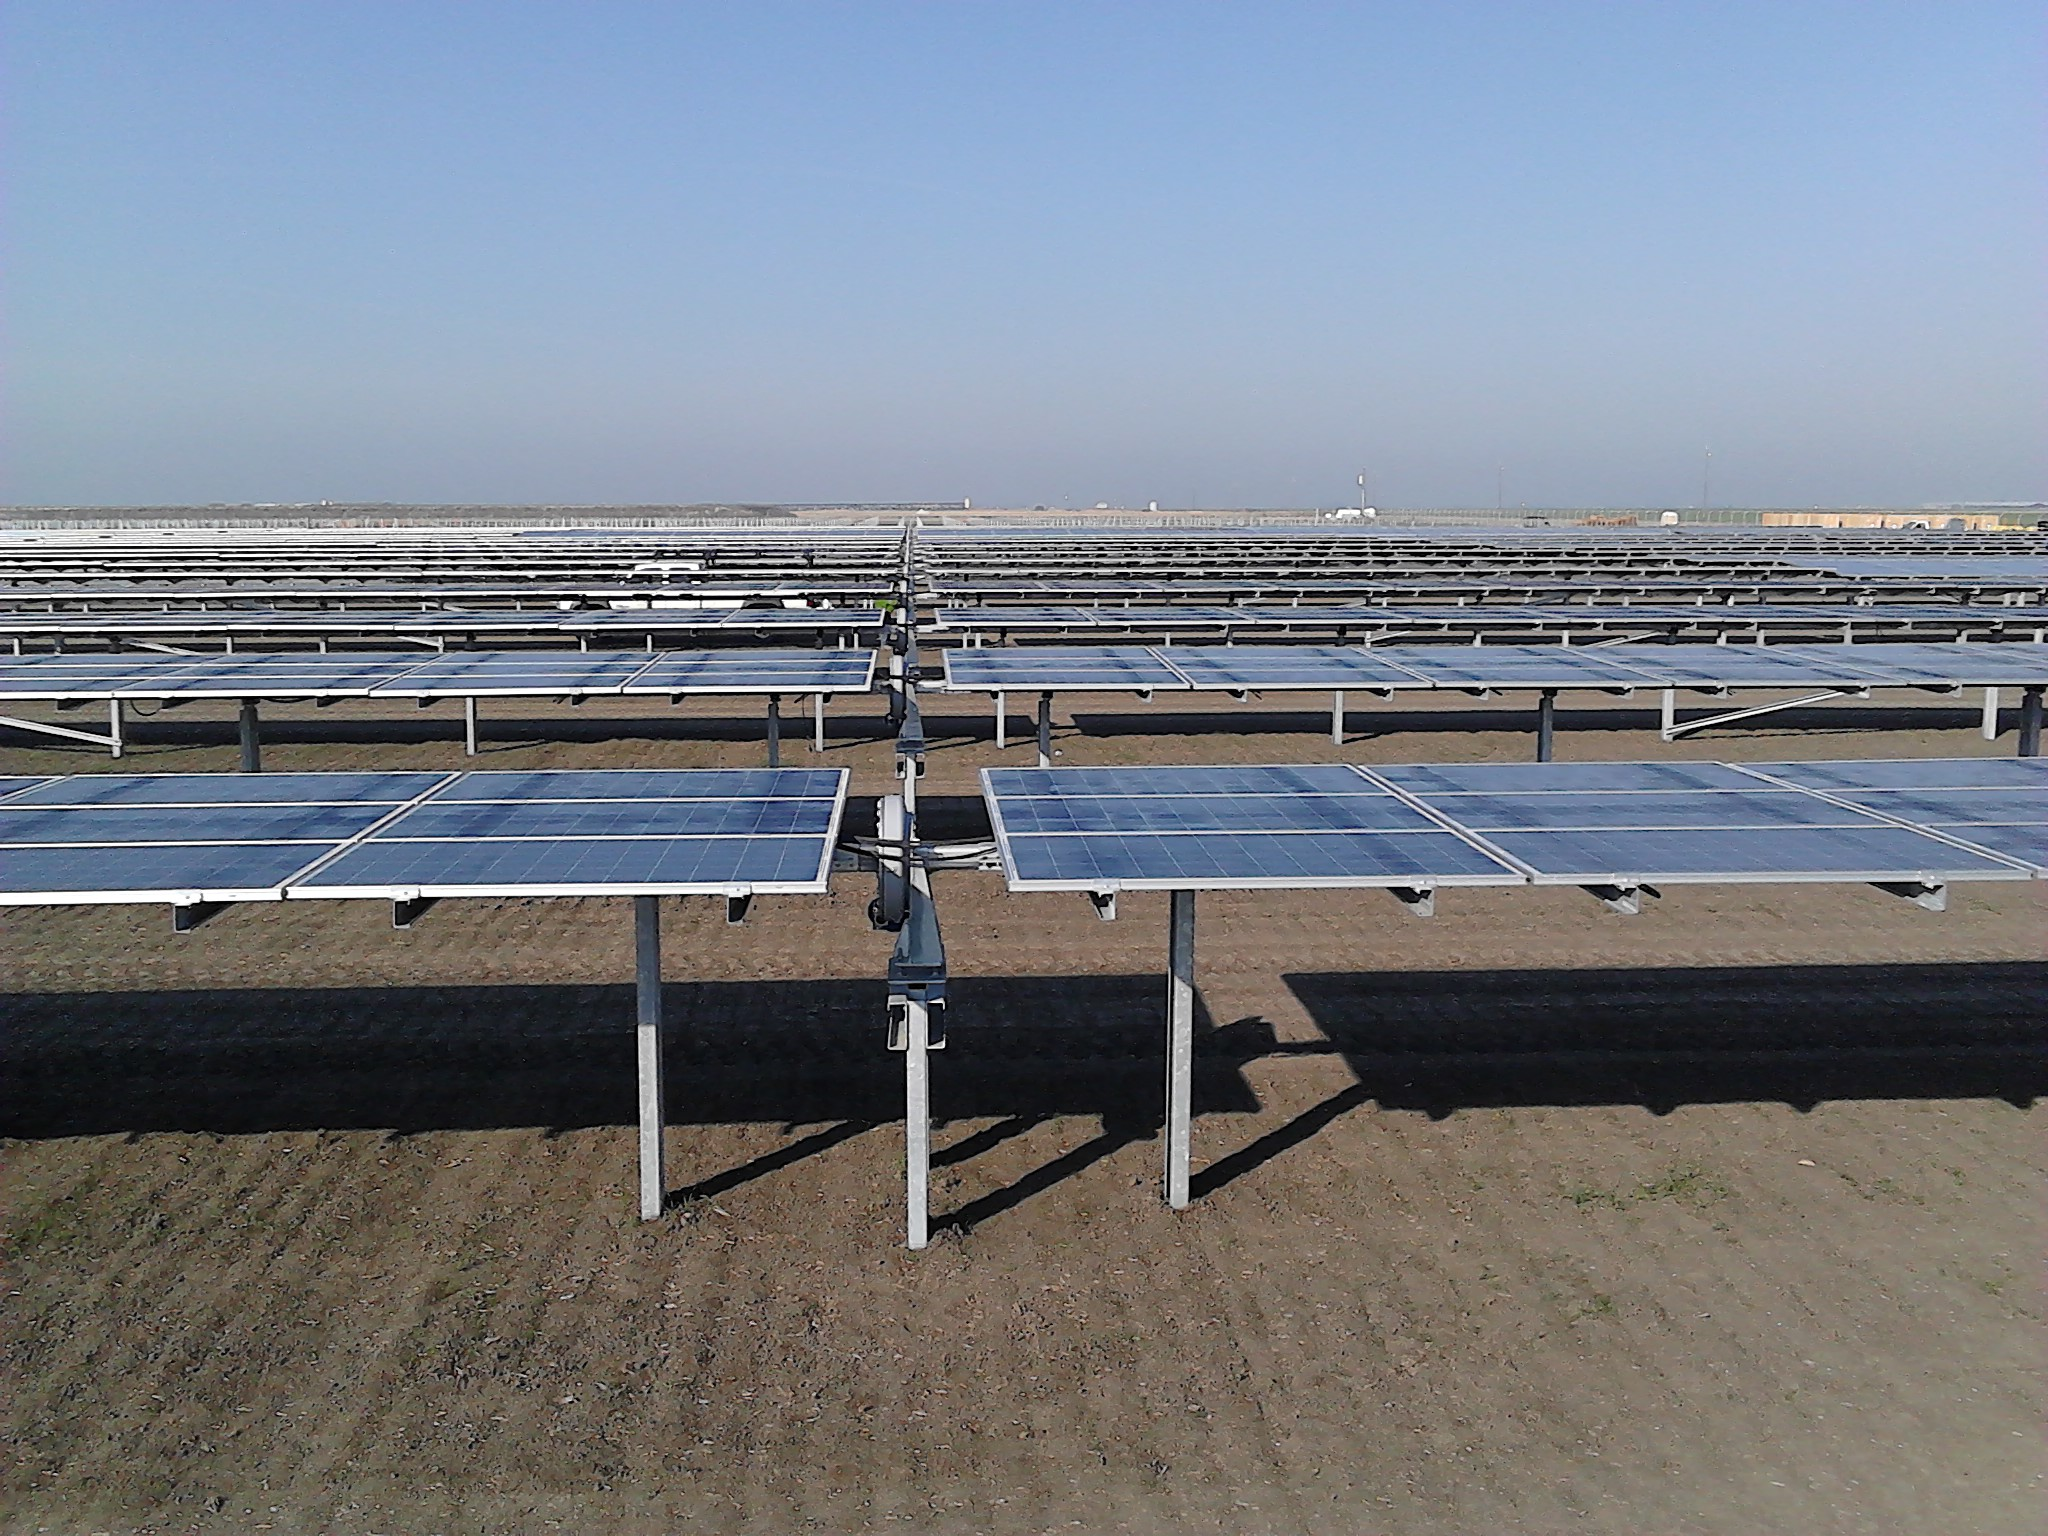 NCLAVE is scheduled to install 600MW of PV installations going forward. Image: Grupo Clavijo